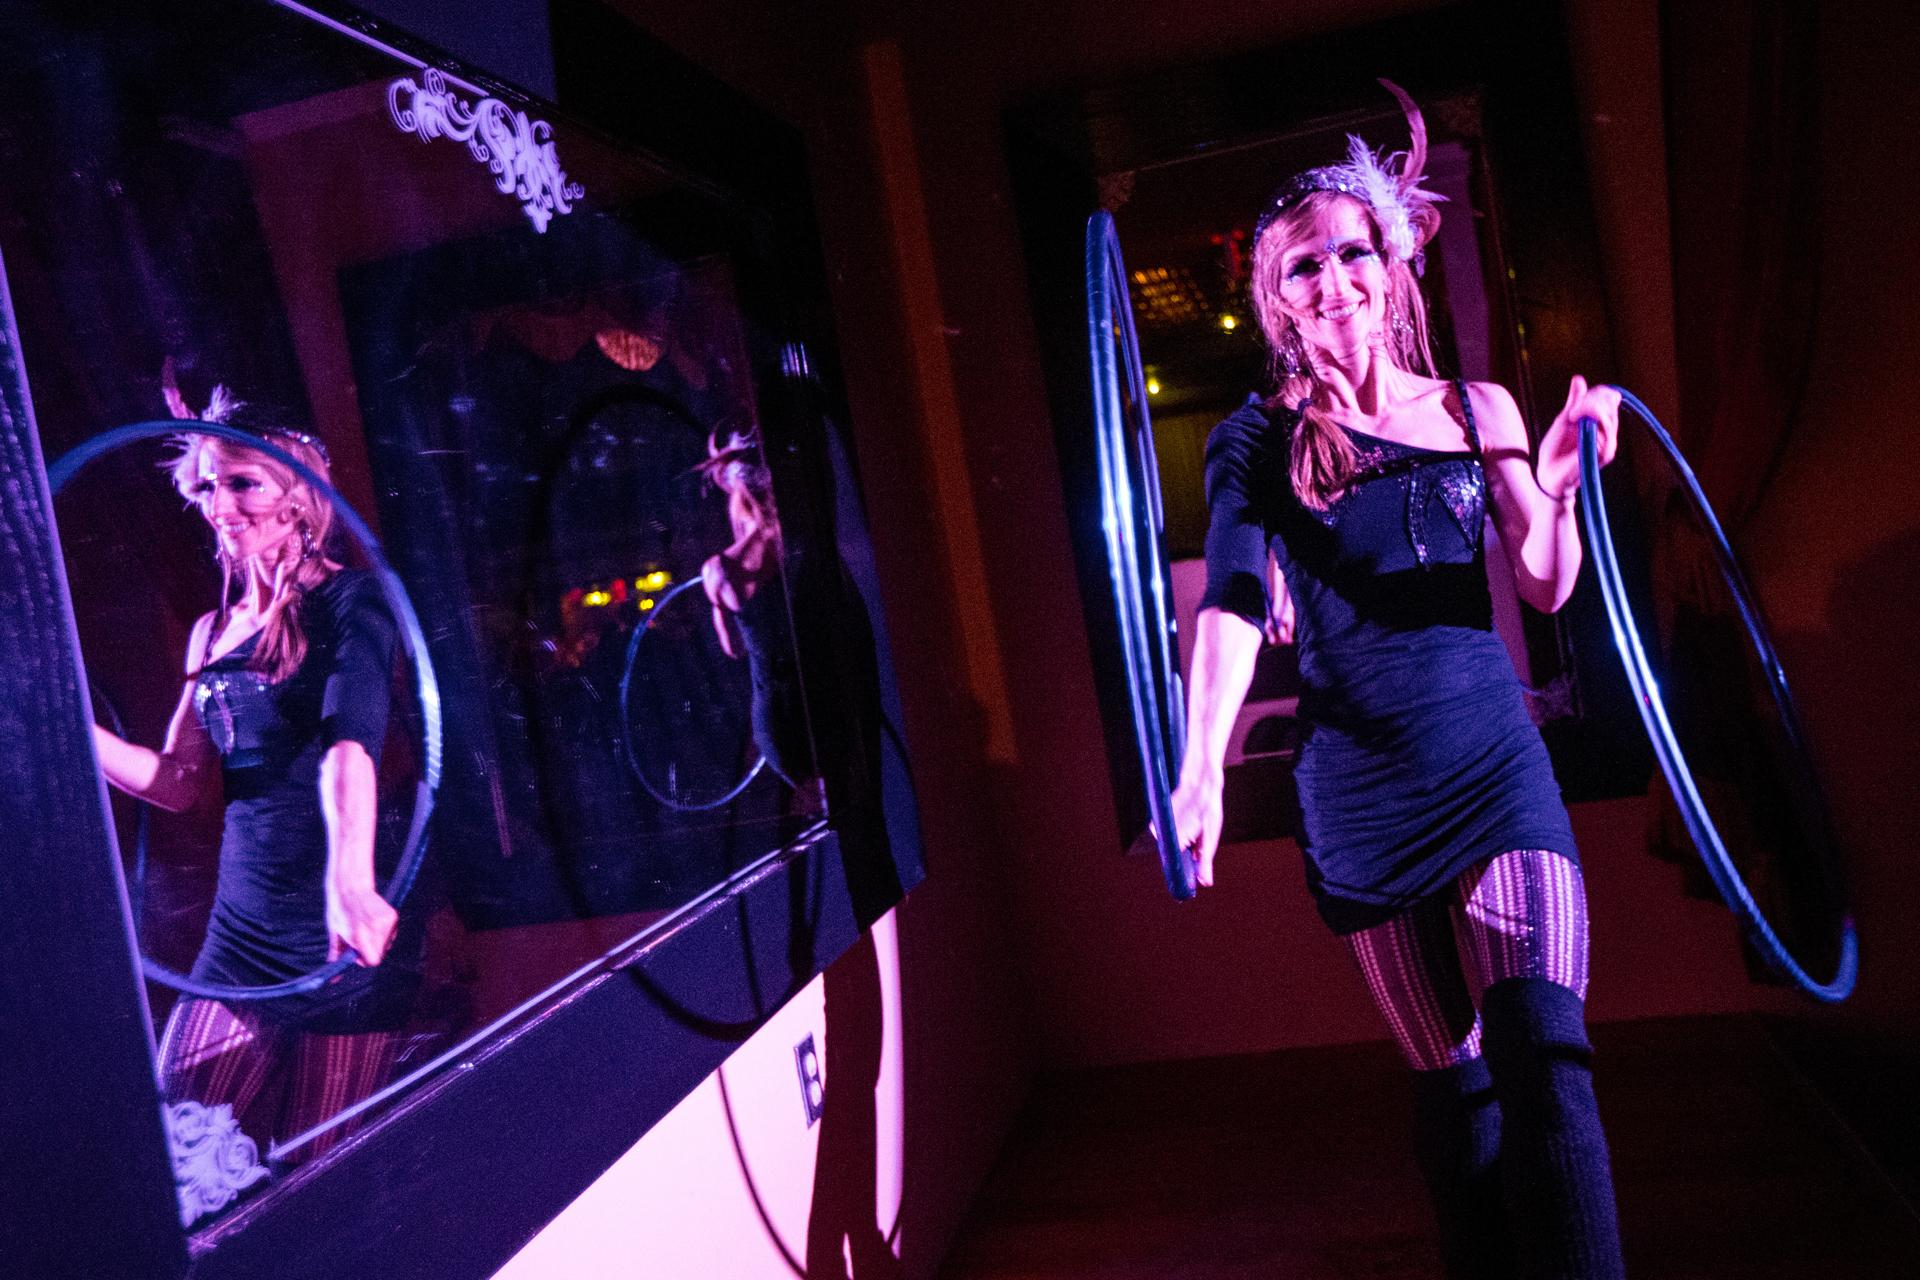 01 03 2015 BOSTON MA Little L Performed During A Soft Opening At